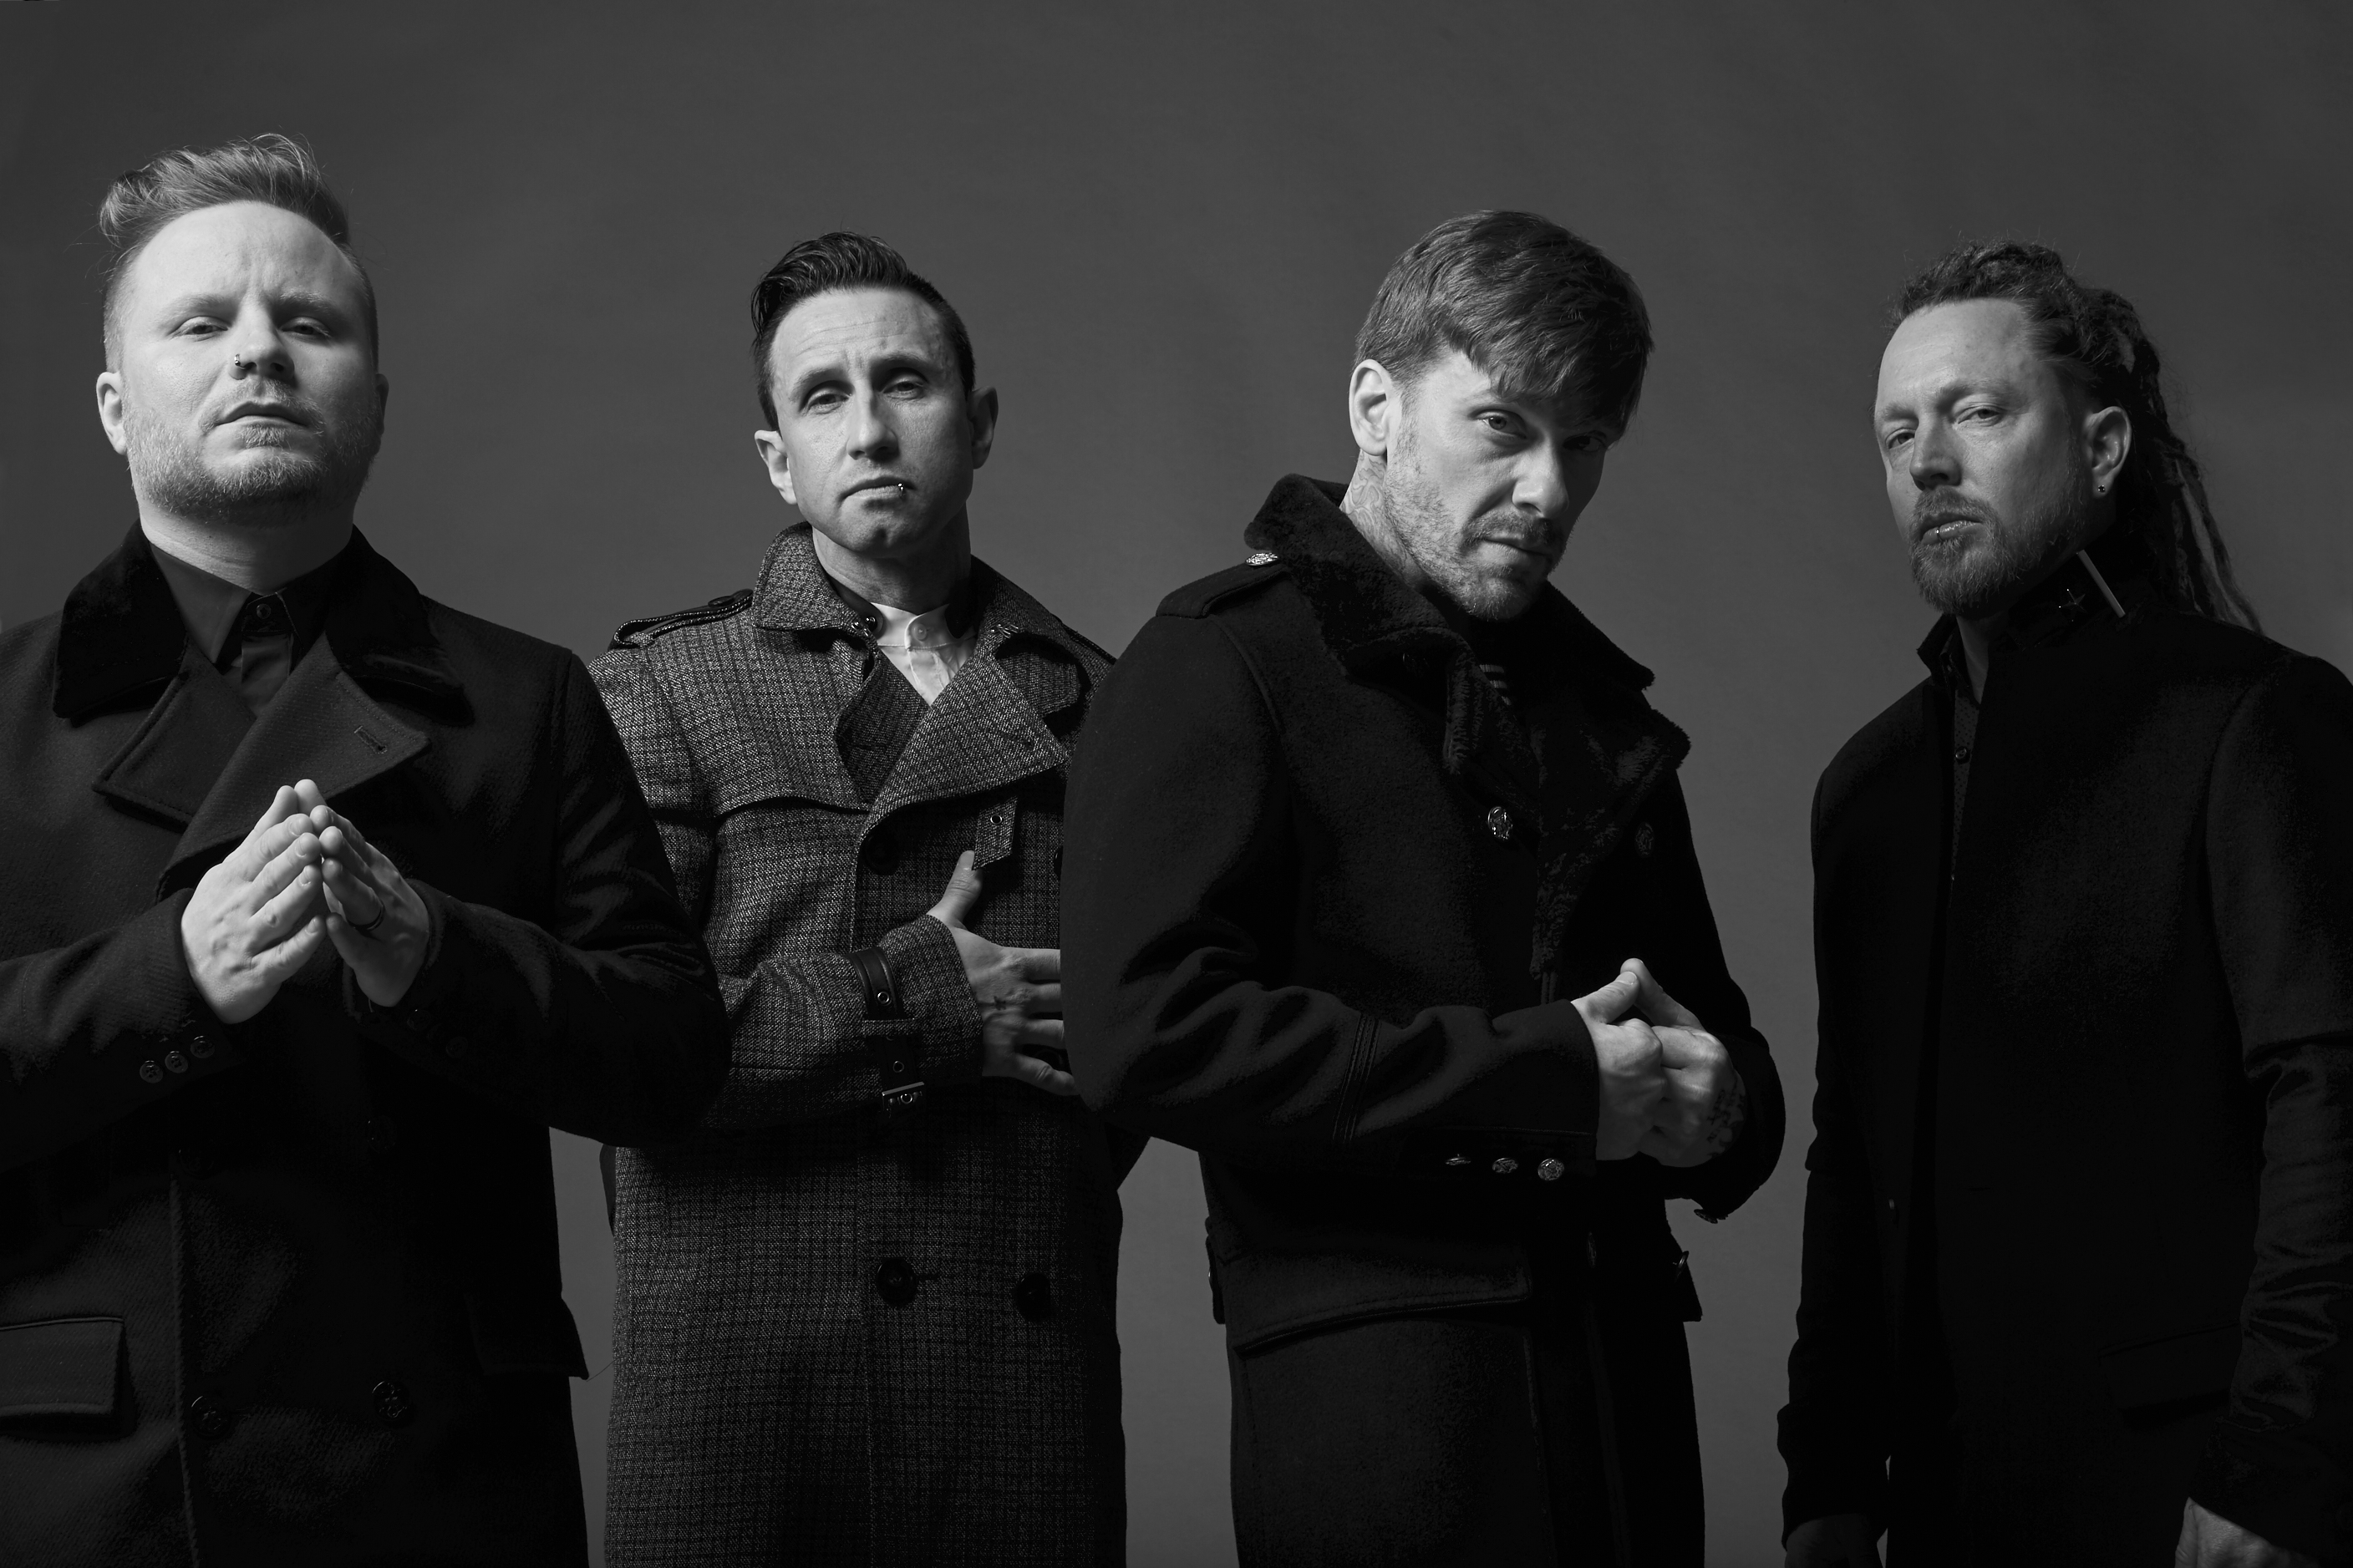 INTERVIEW: Brent Smith of Shinedown talks 'ATTENTION ATTENTION,' mental health, and respecting one another